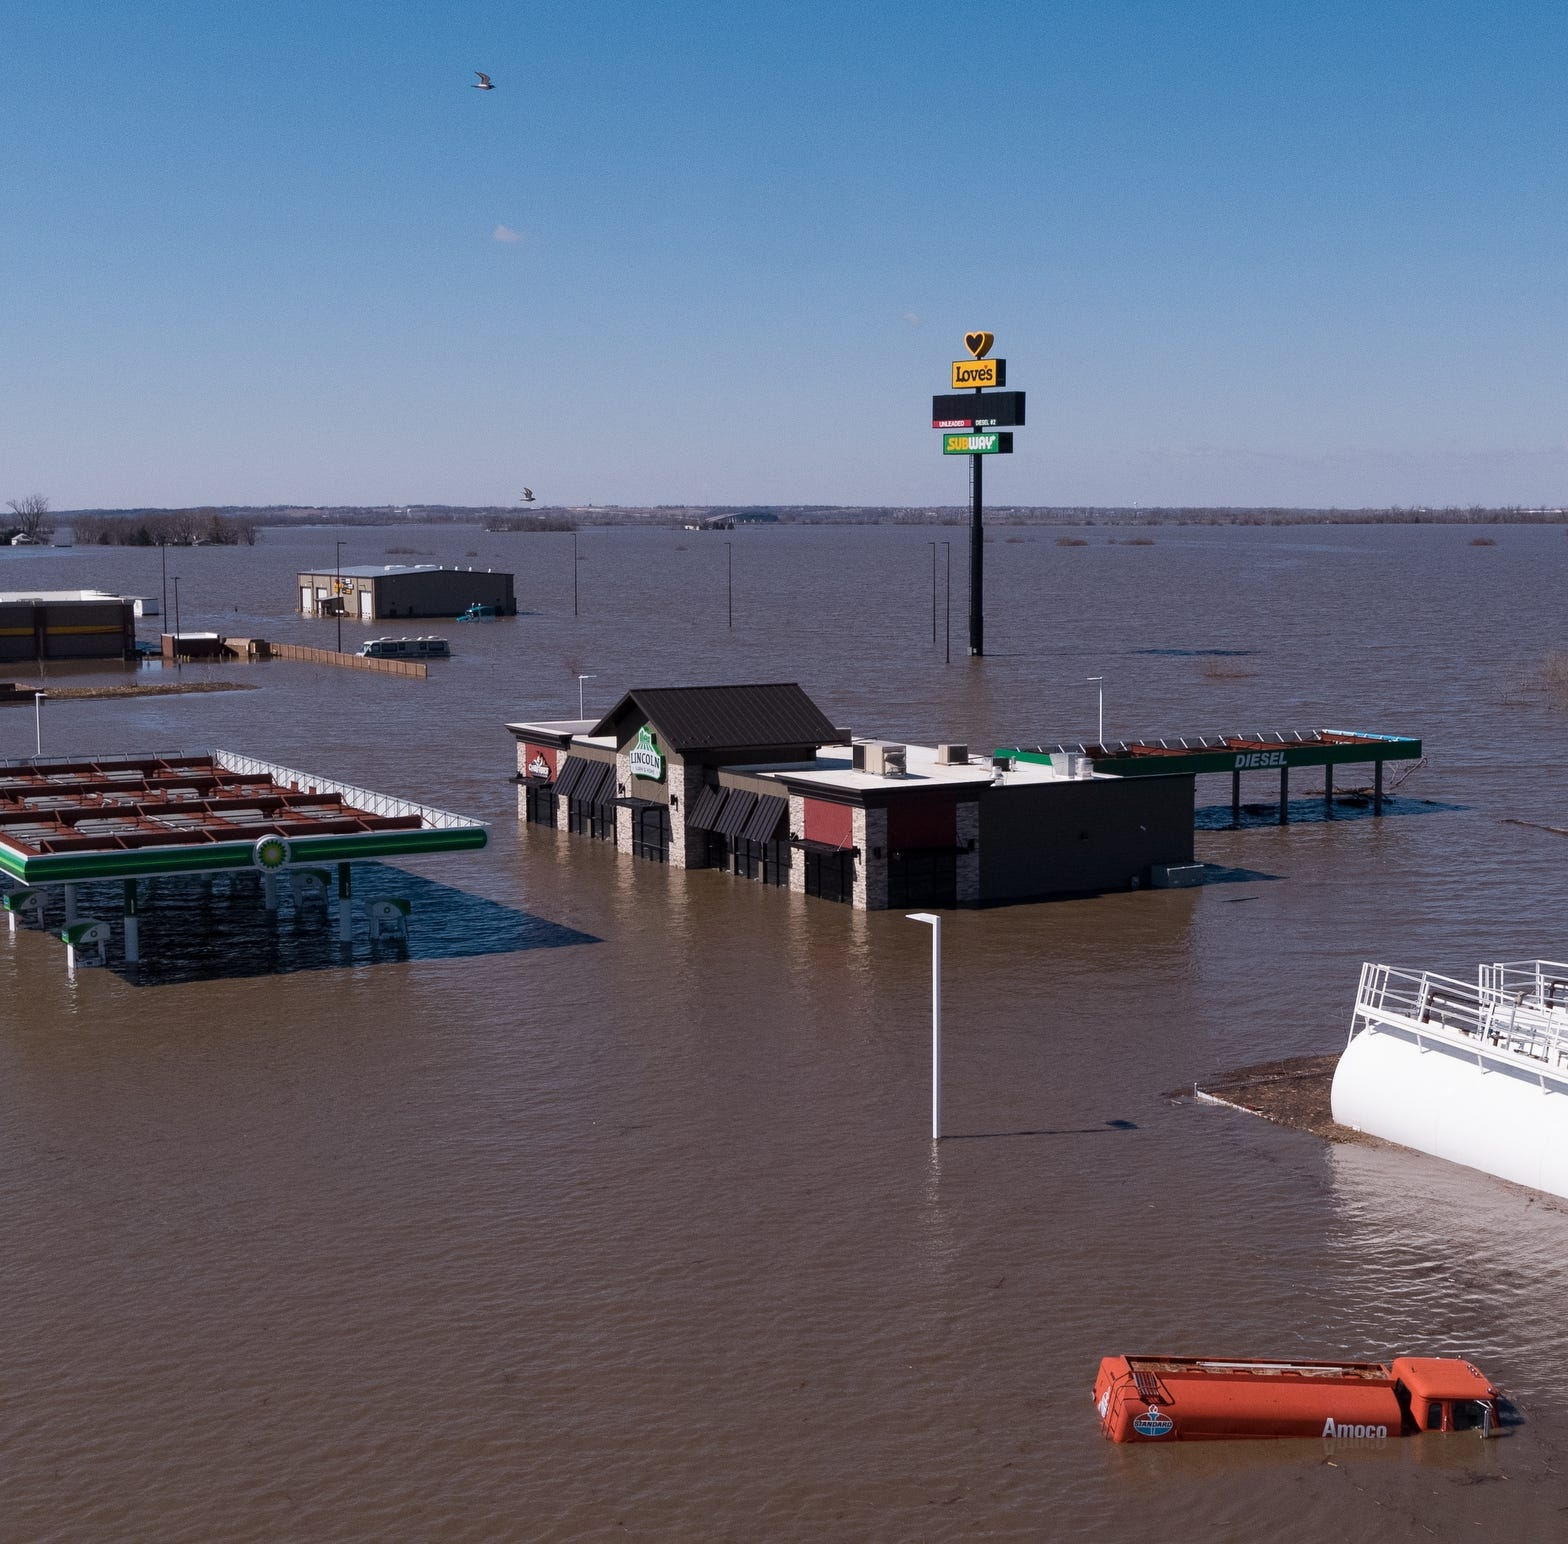 More flooding possible in Iowa as extreme weather could pummel the Midwest, NWS says